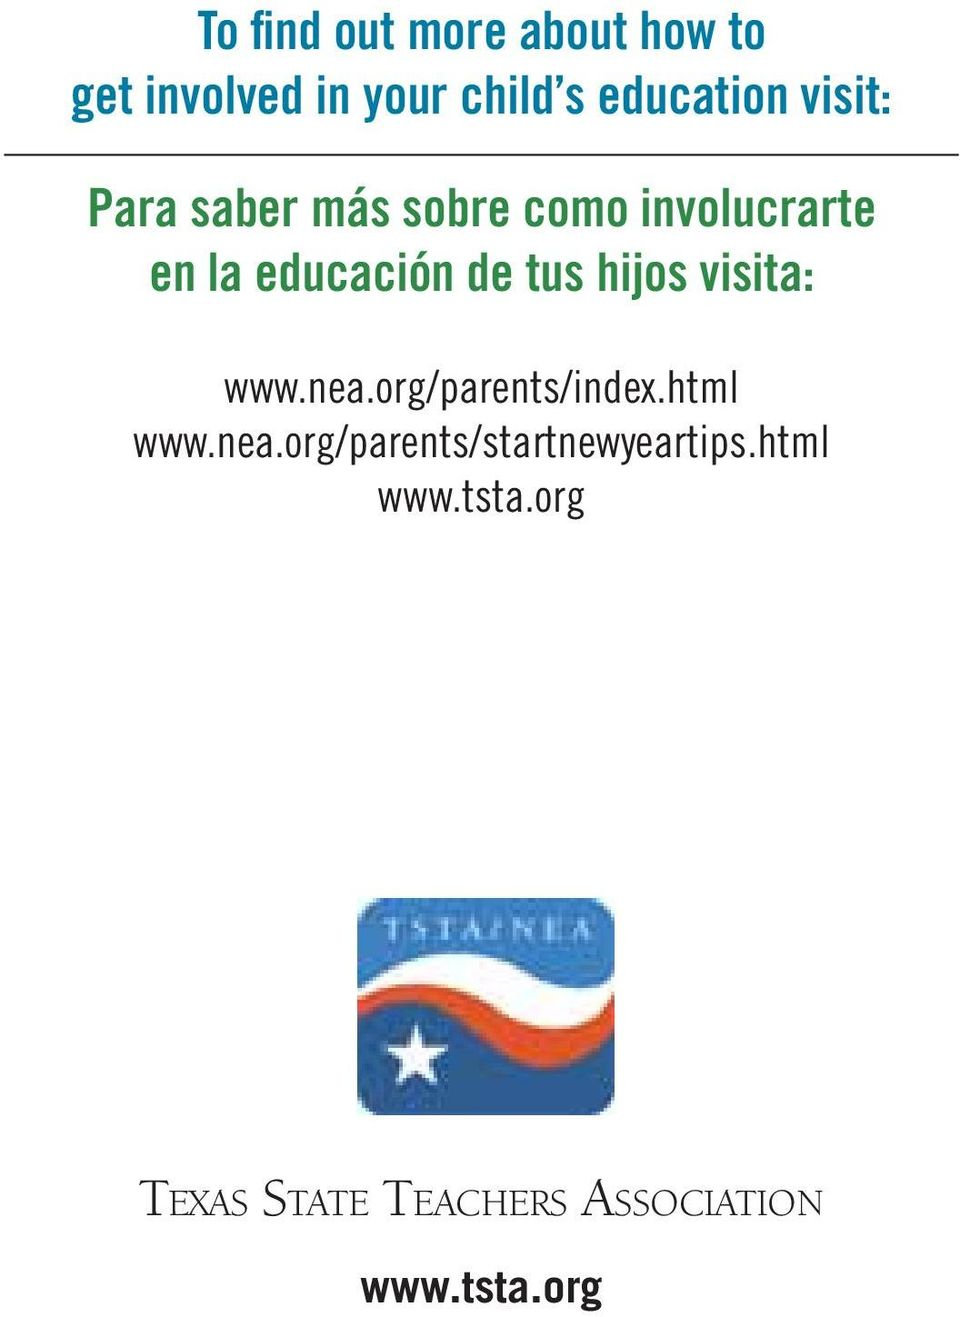 educación de tus hijos visita: www.nea.org/parents/index.